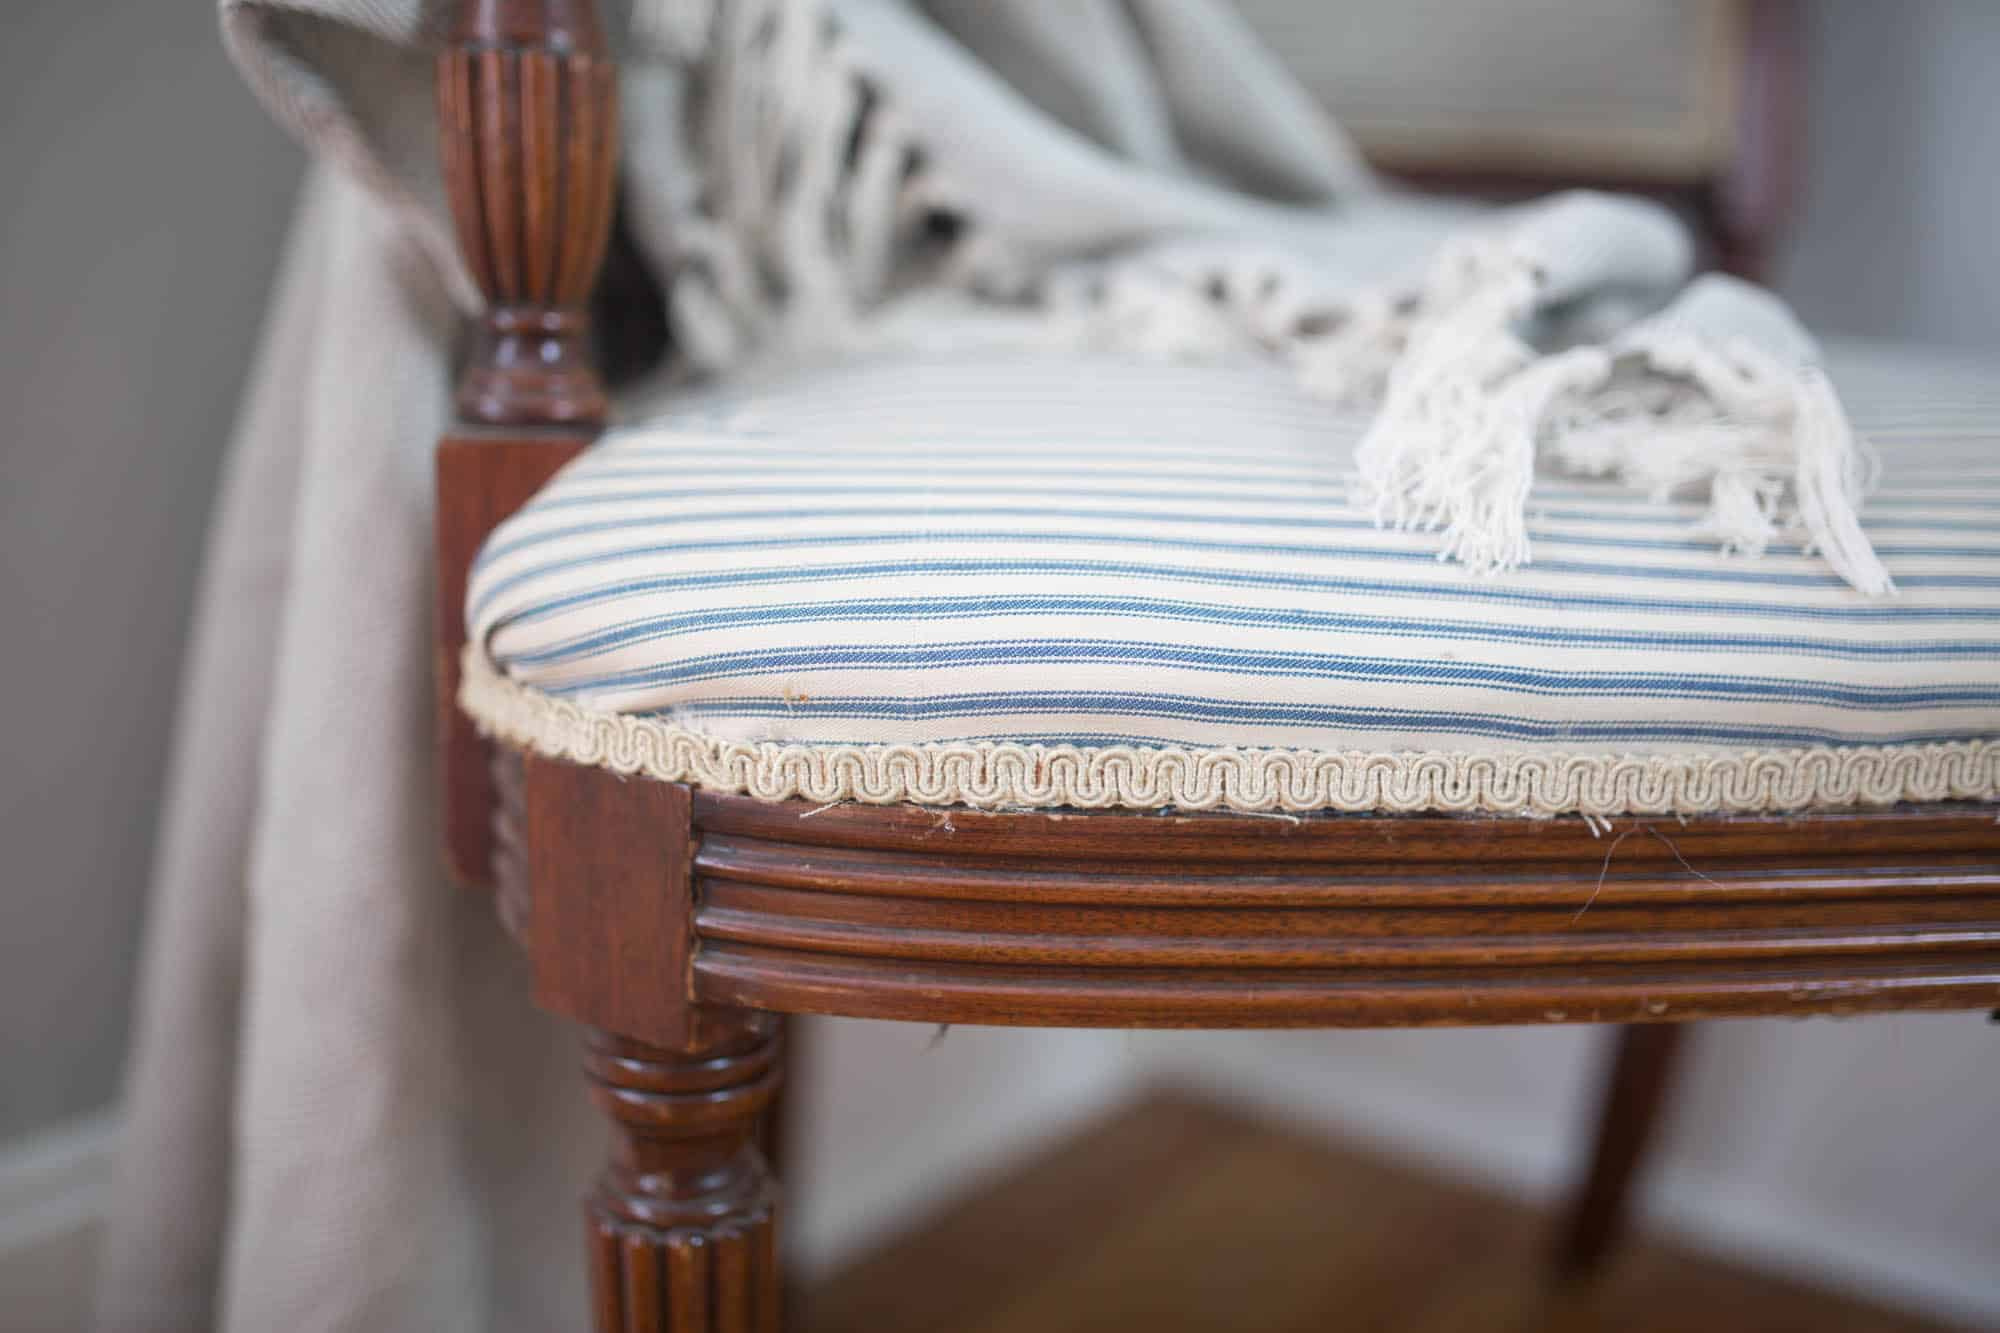 reupholster a chair with this simple video tutorial.